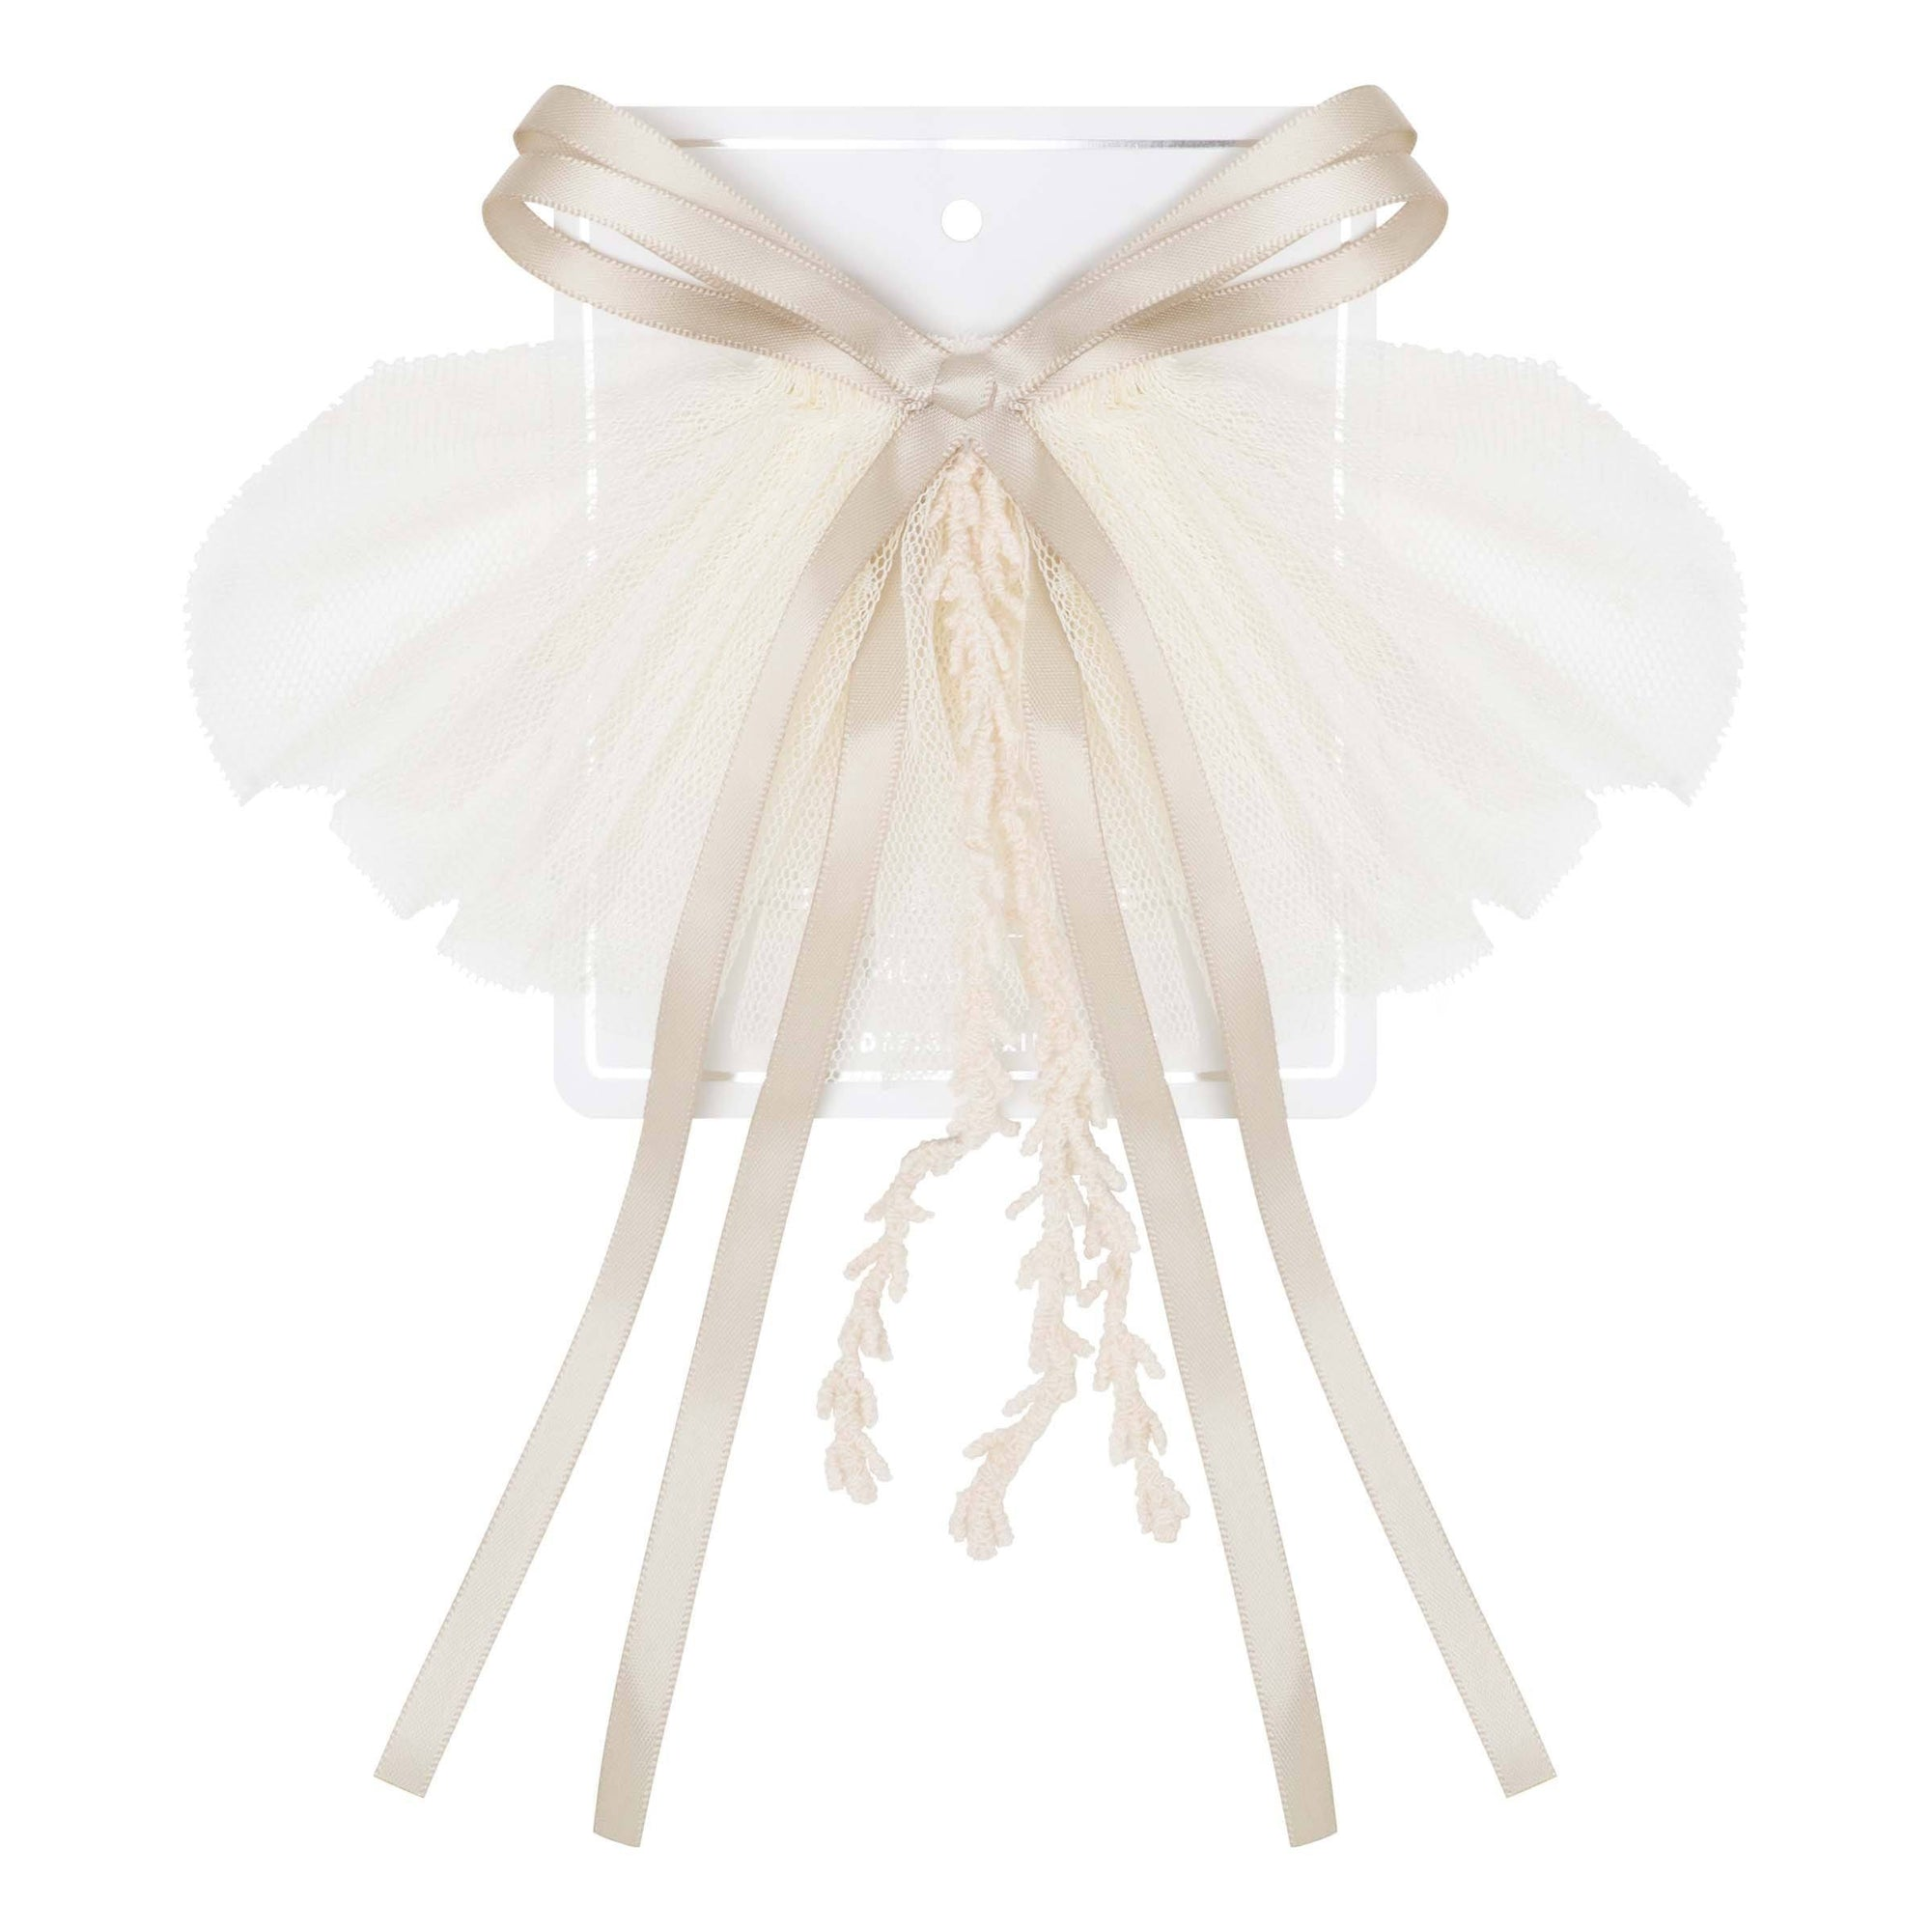 Buy Layla Bow Tie Hair Clip - Ivory - Designer Kidz | Special Occasions, Party Wear & Weddings  | Sizes 000-16 | Little Girls Party Dresses, Tutu Dresses, Flower Girl Dresses | Pay with Afterpay | Free AU Delivery Over $80